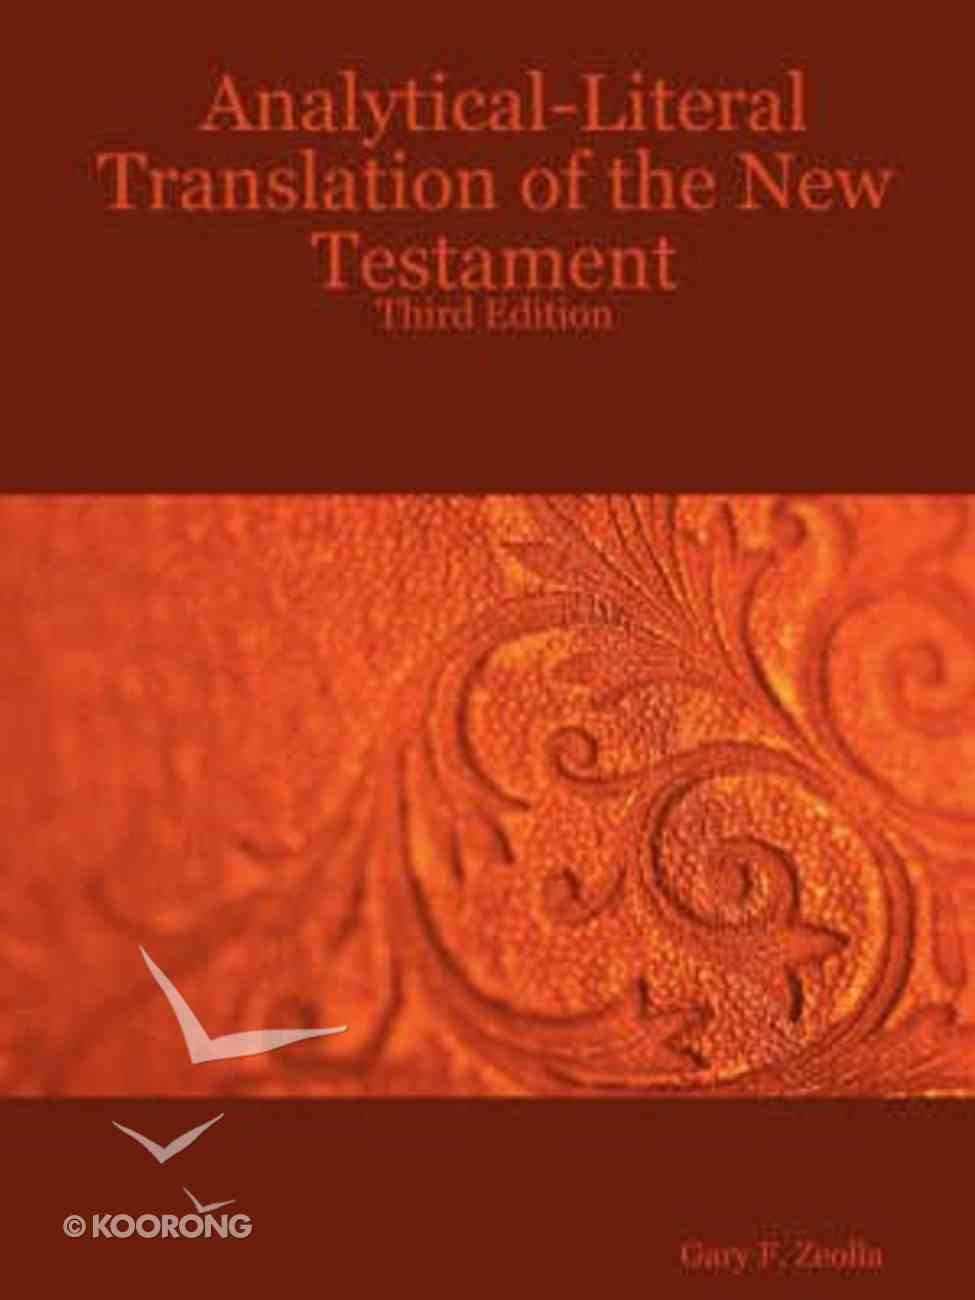 Analytical-Literal Translation of the New Testament (Third Edition) Paperback